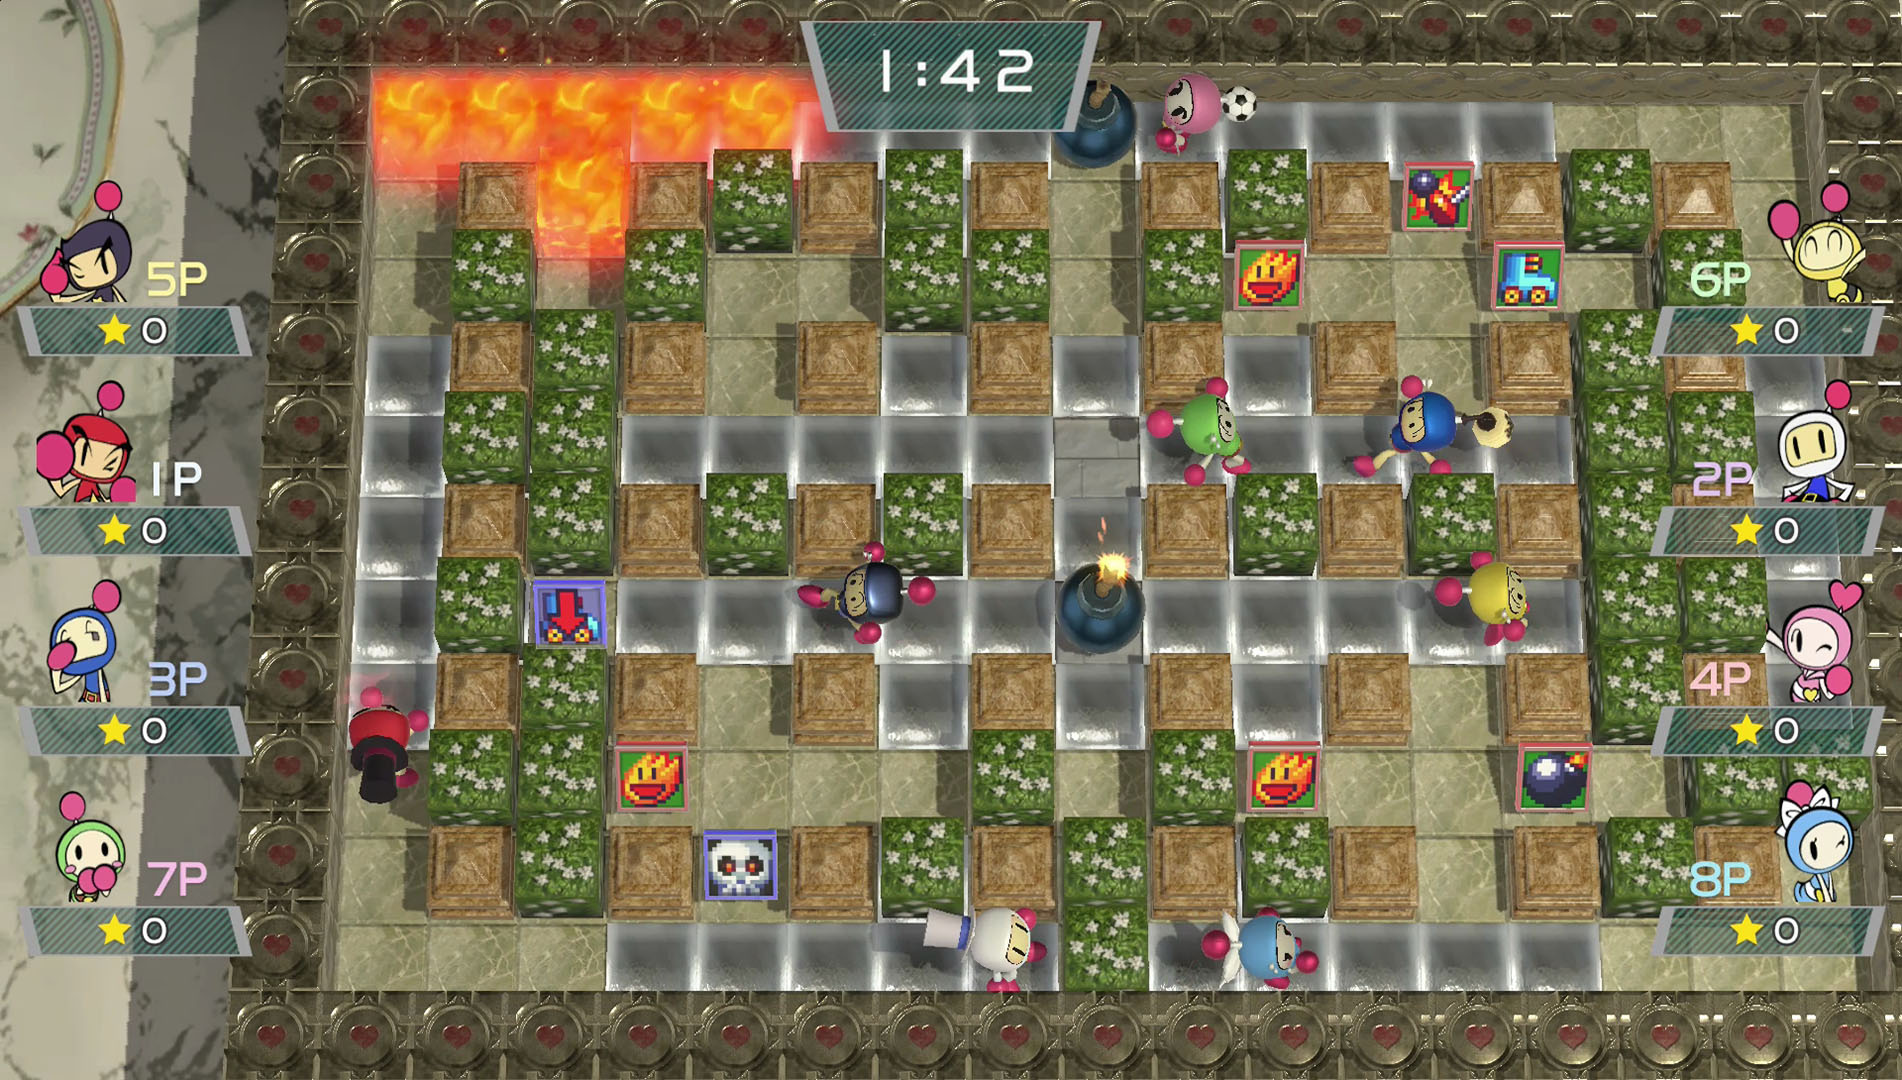 Switch Super Bomberman R For Gamers Compare And Find The Best Switchsuper Konami Announces Nintendo